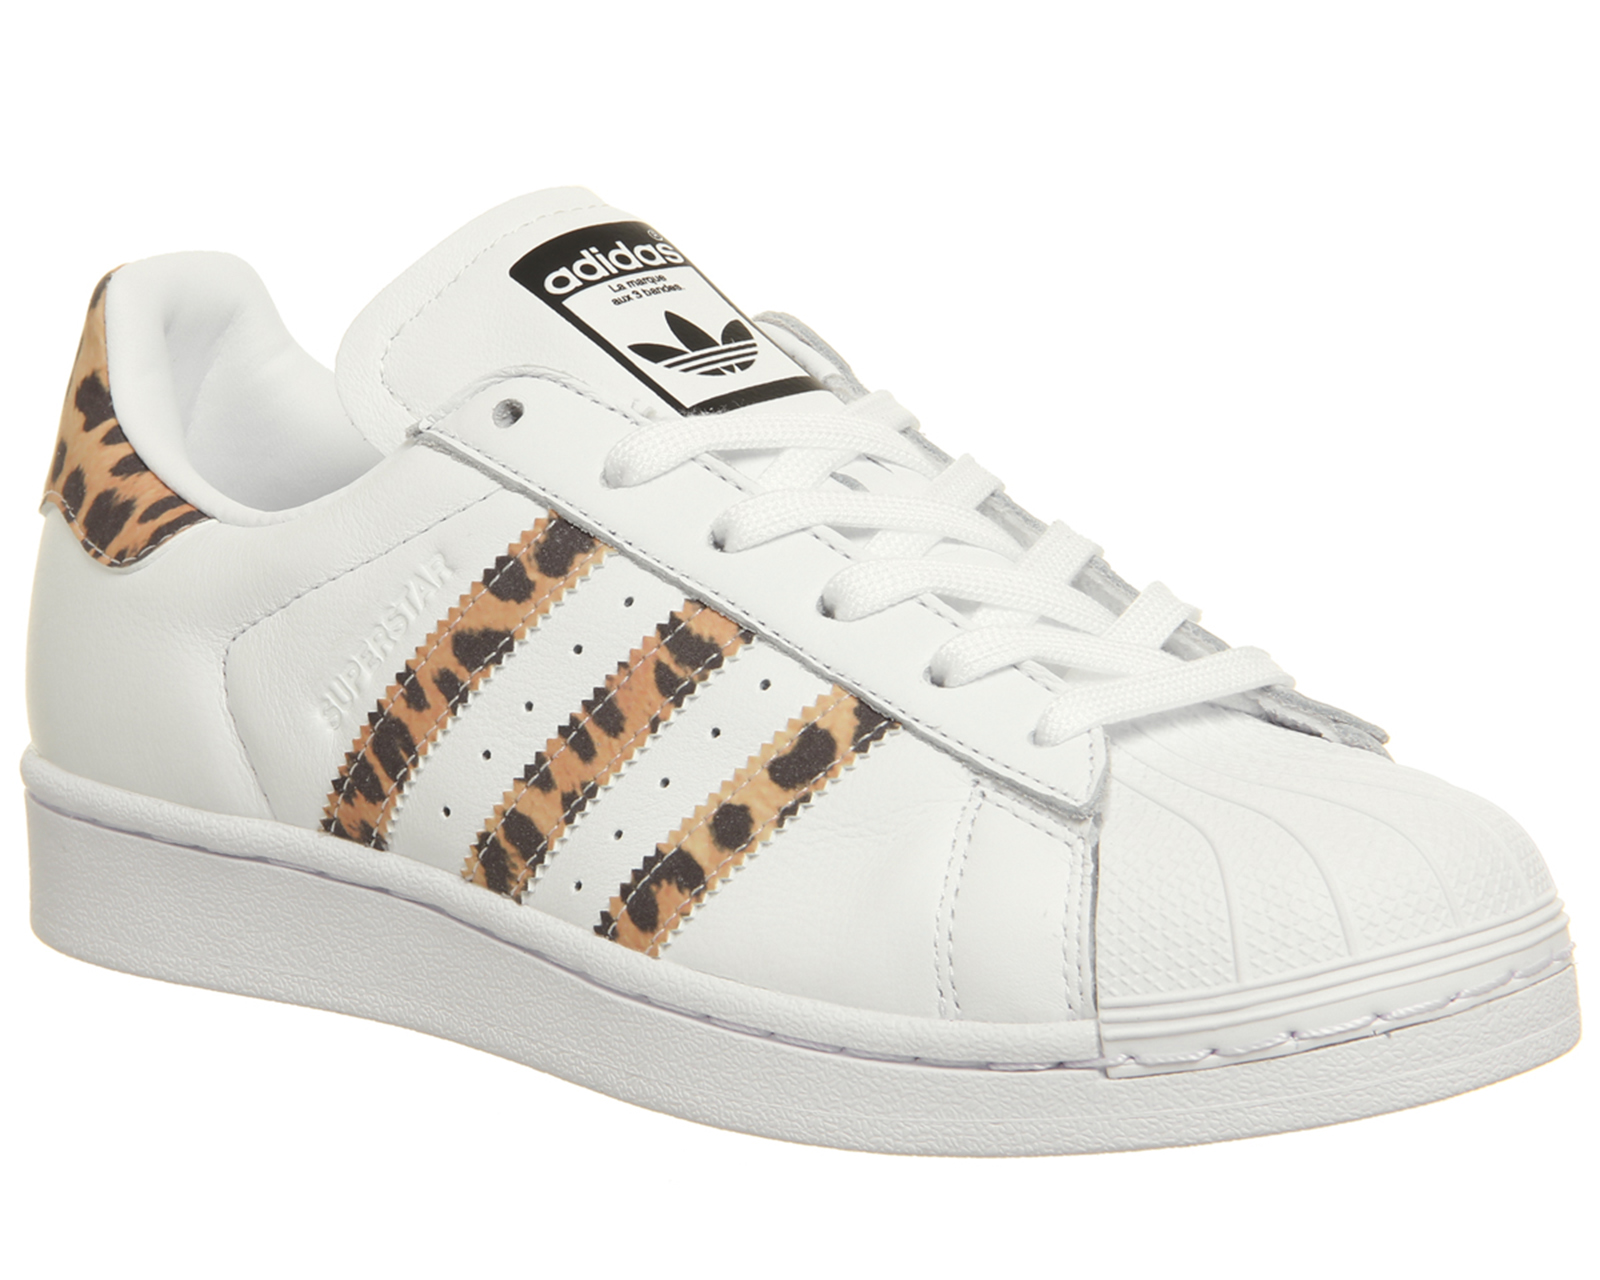 dd6305d9eea30 ... closeout sentinel womens adidas superstar 1 trainers white leopard core  black f trainers shoes a85f4 5775d